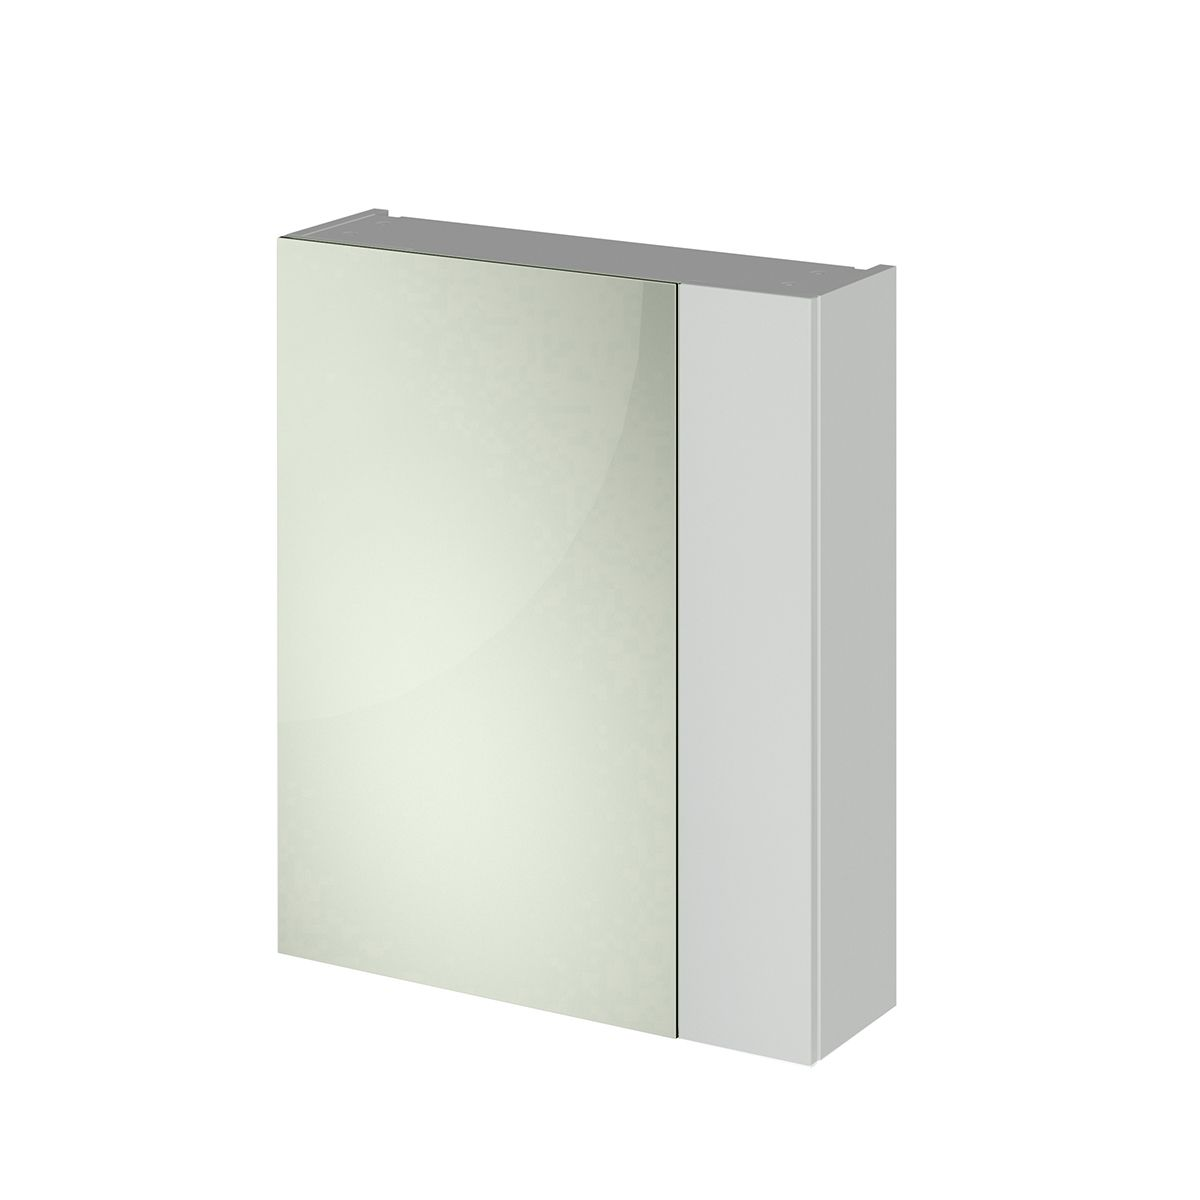 Nuie Athena Gloss Grey Mist Double Mirrored Bathroom Cabinet 600mm